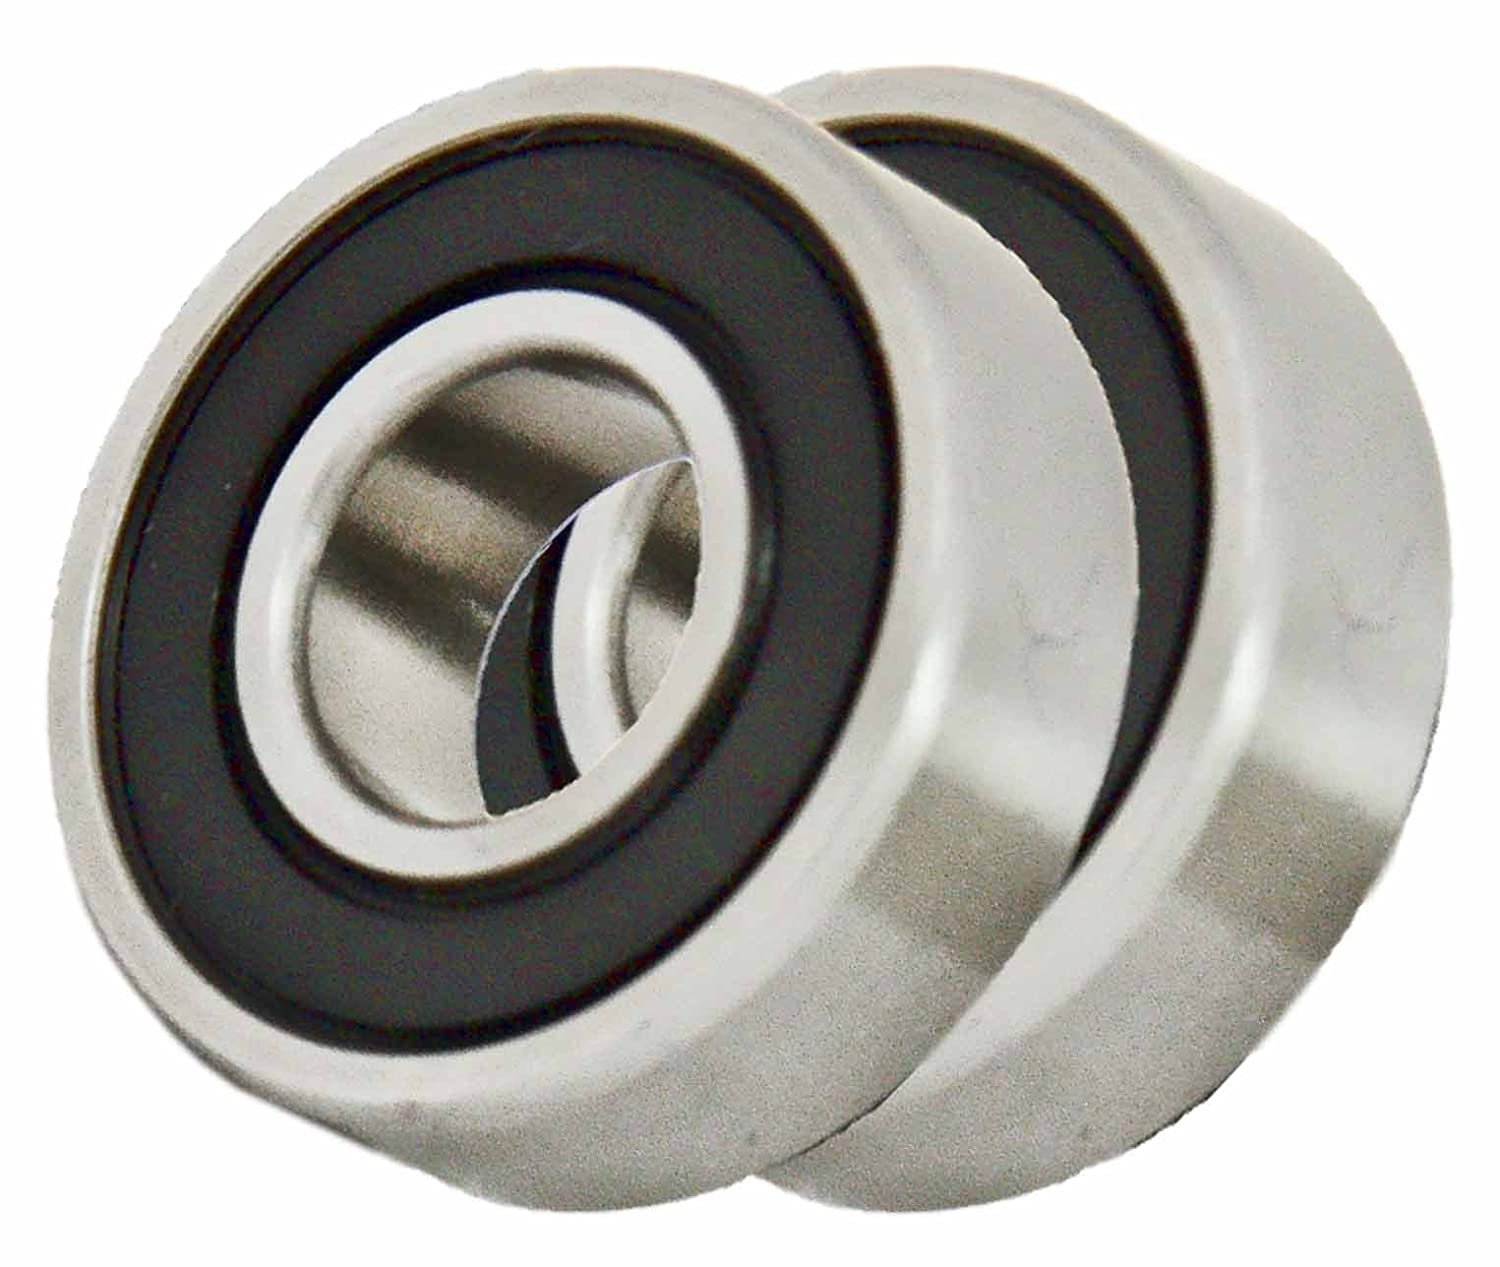 4x SR6-2RS Stainless Steel Sealed Ball Bearing 3//8in x 7//8in x 9//32in Rubber New